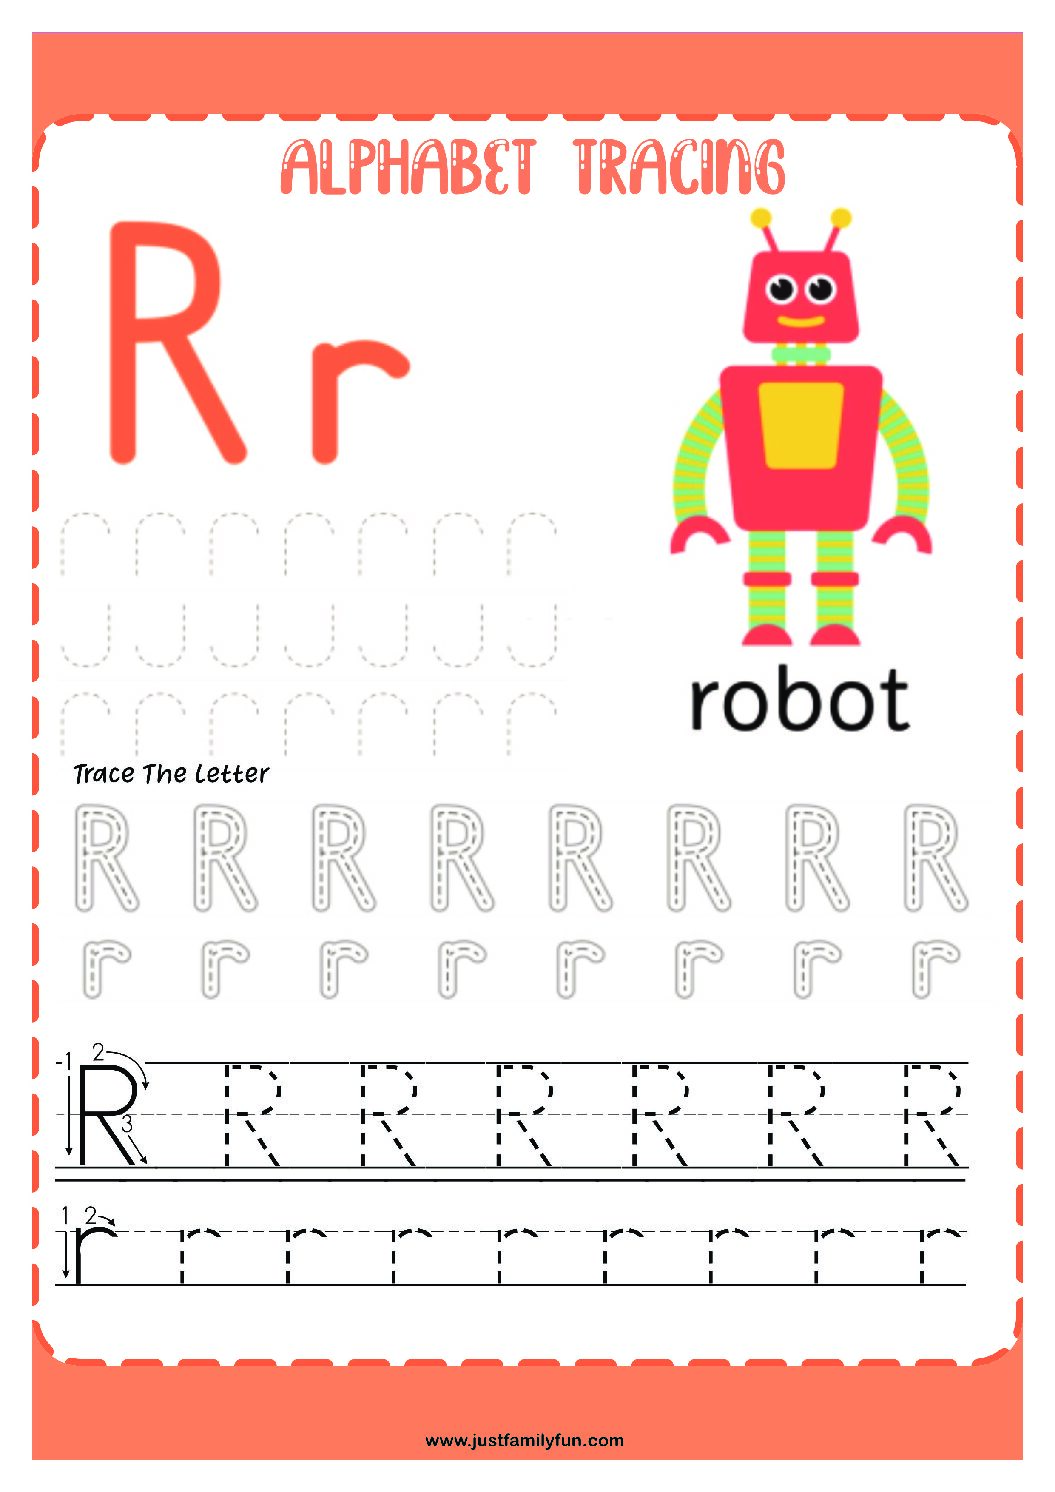 Alphabets_18-pdf Free Printable Trace The Alphabet Worksheets for Kids.